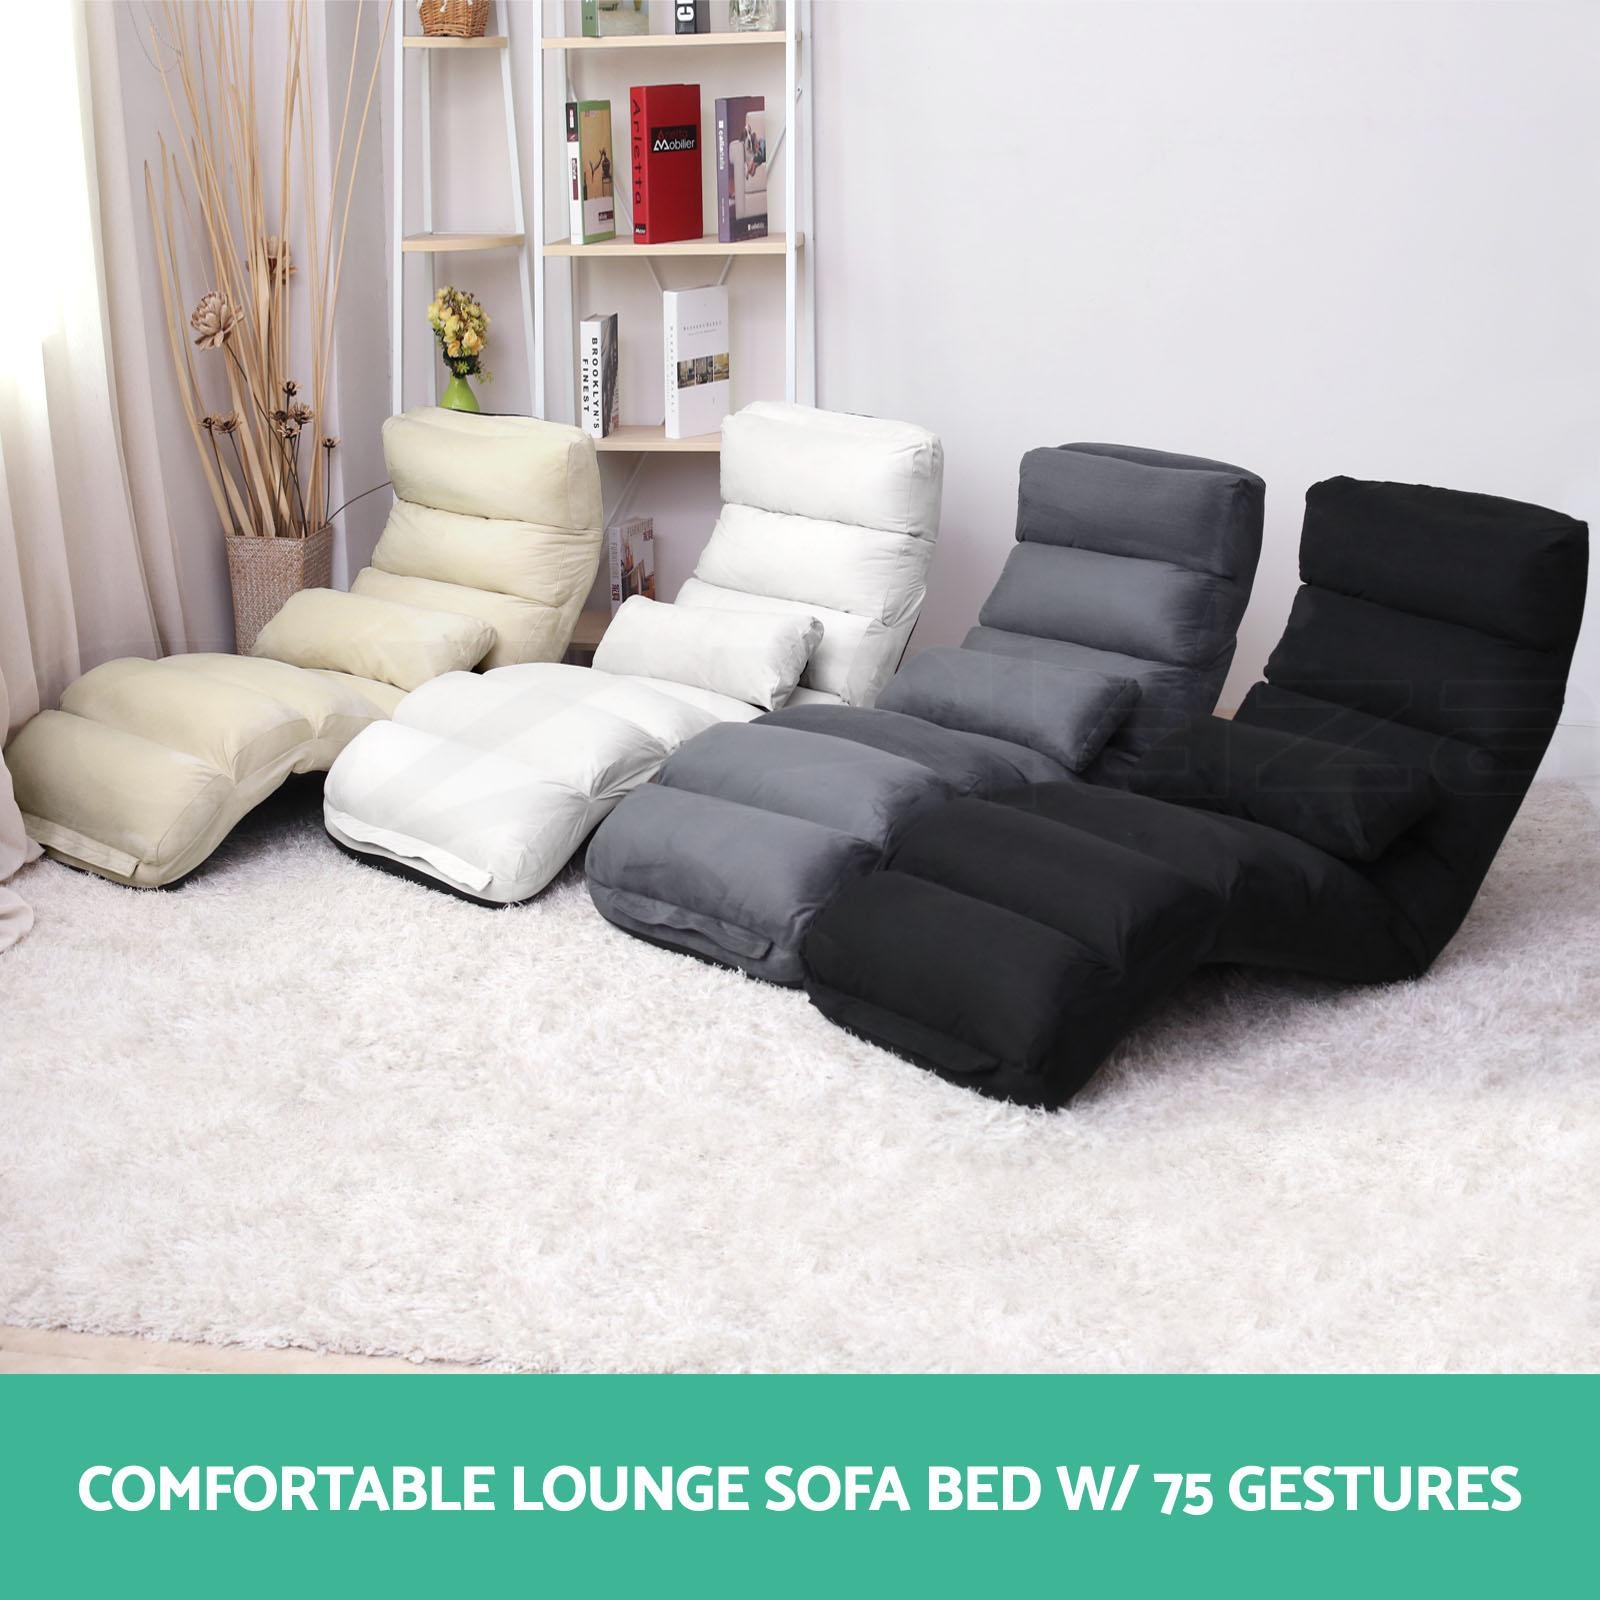 Lounge Sofa Bed Floor Recliner Folding Chaise Chair Adjustable Regarding Sofa Lounger Beds (View 3 of 20)